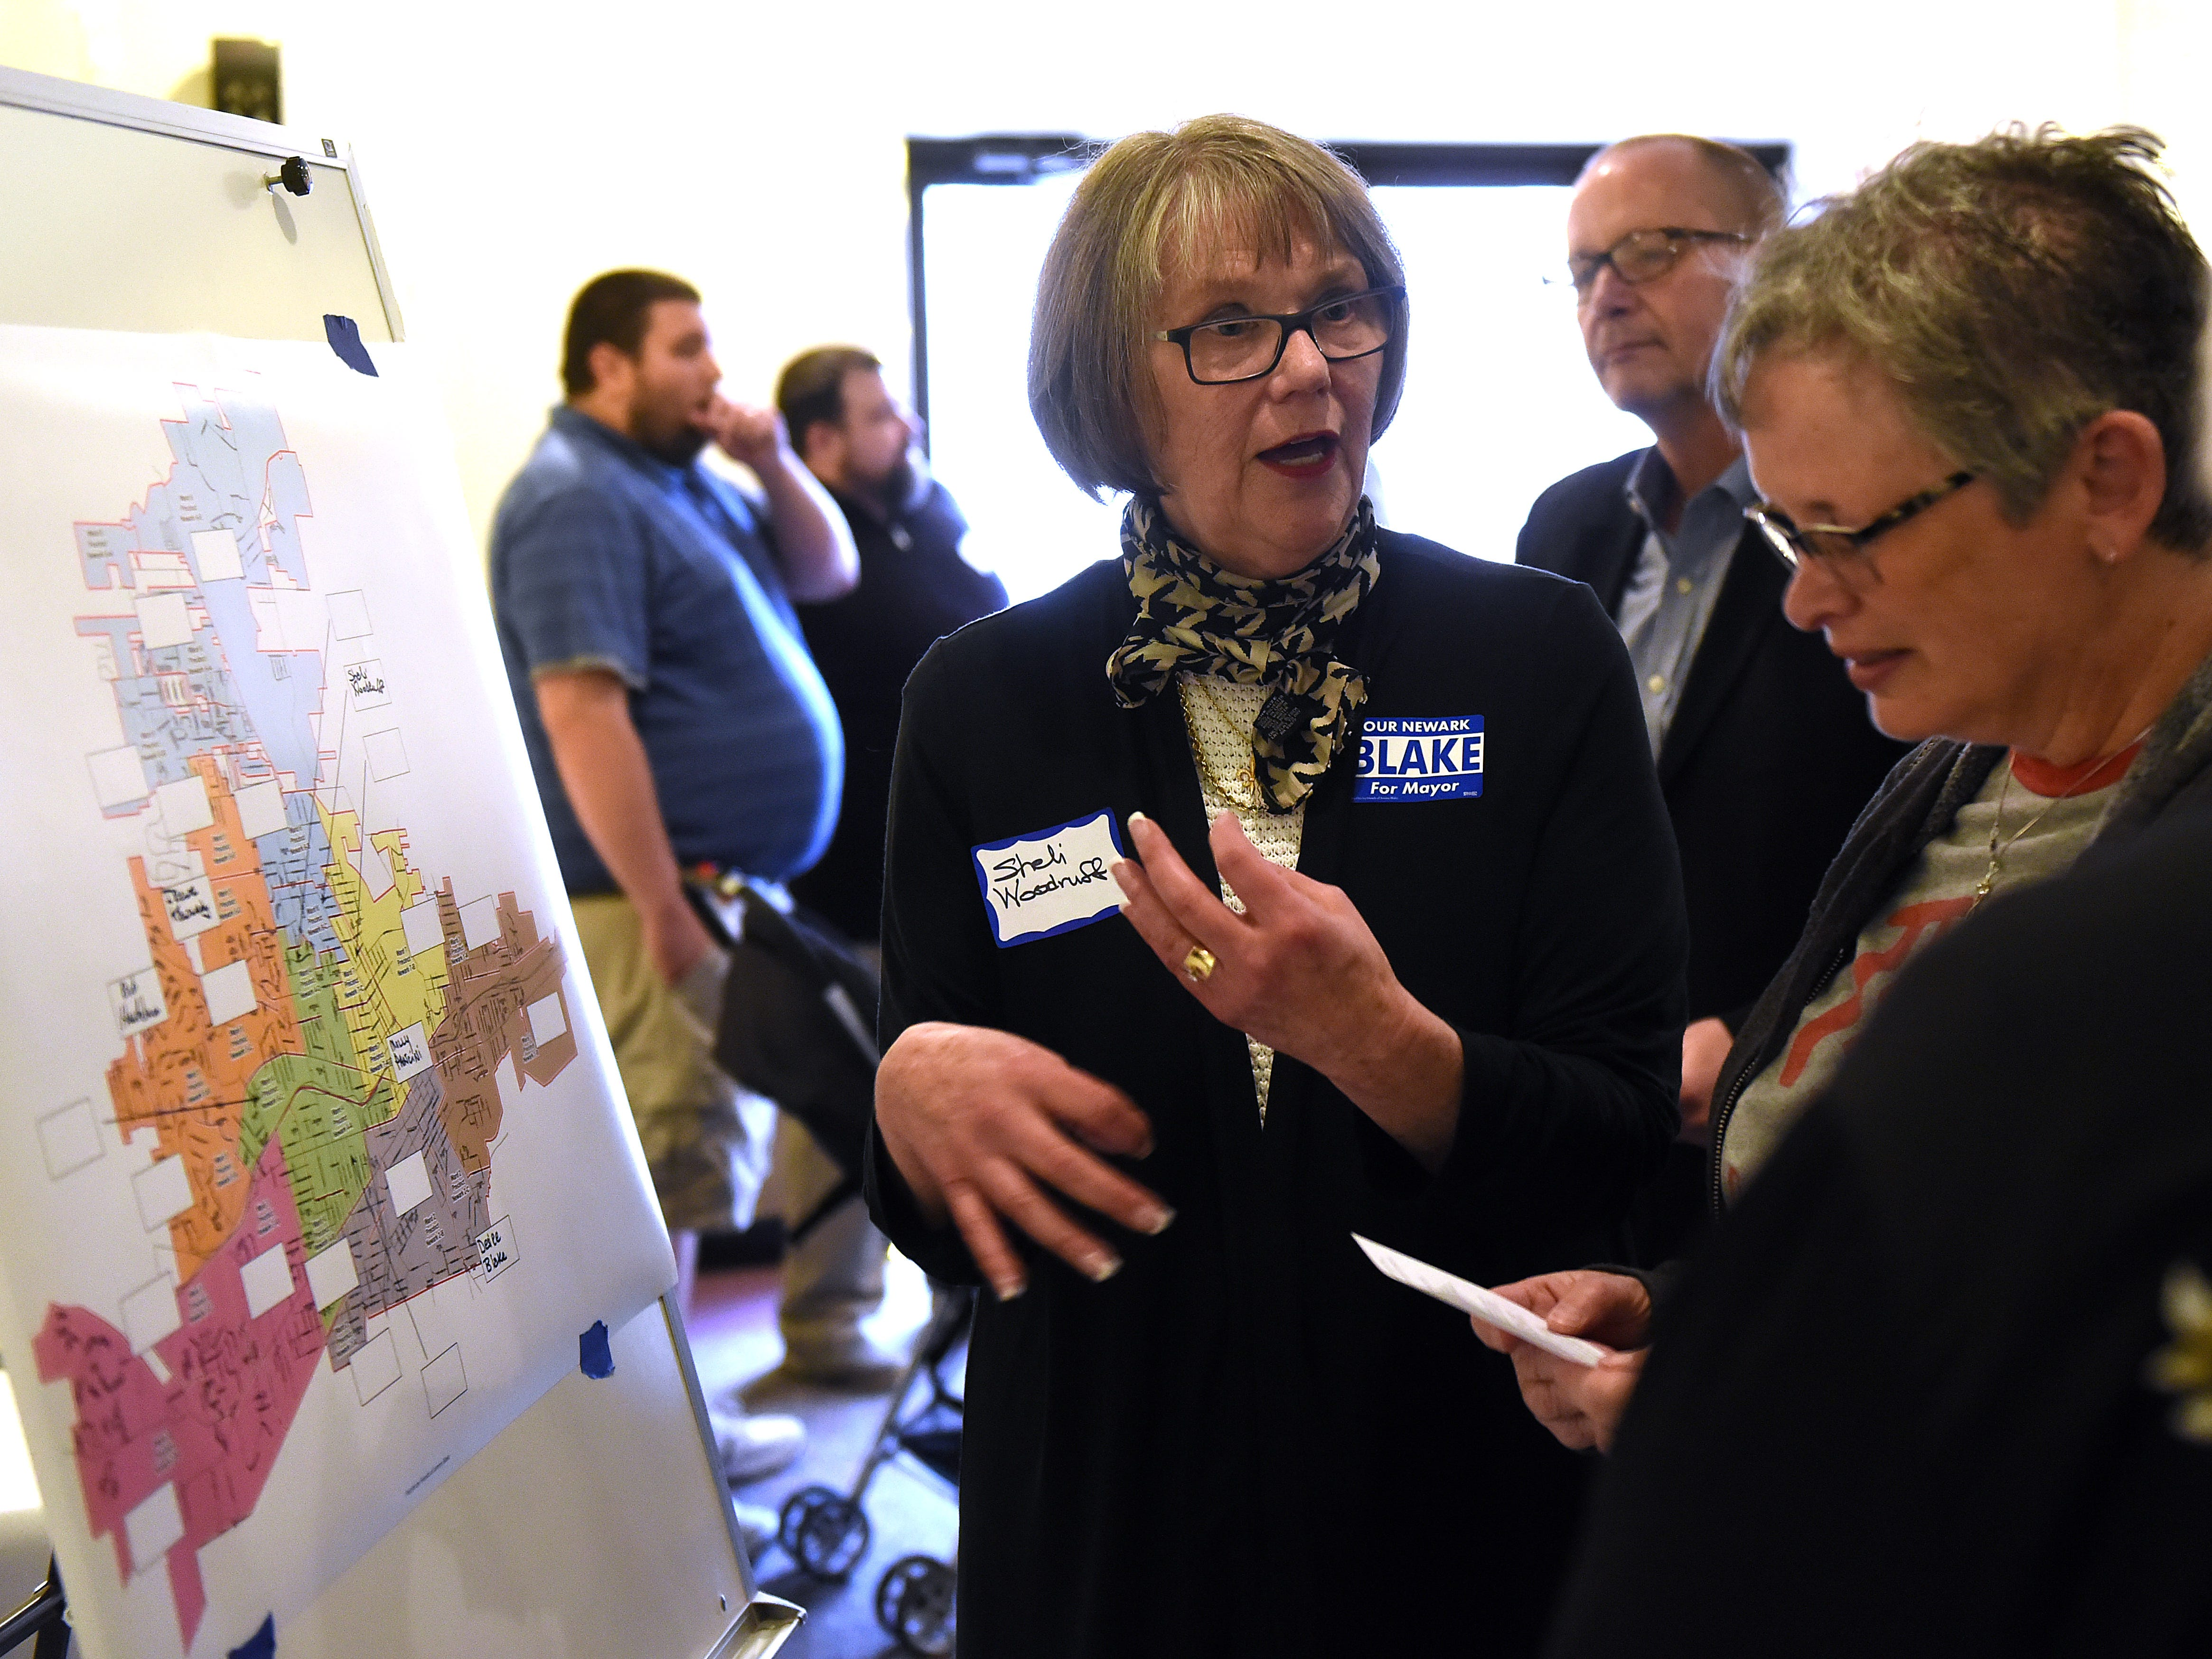 Sheli Woodruff, a precinct captain for part of Newark's sixth ward, discusses volunteering for City Councilman Jeremy Blake's campaign for mayor with Beth Schorr during a campaign kickoff event on Thursday, April 4, 2019 at The Grove by the River.